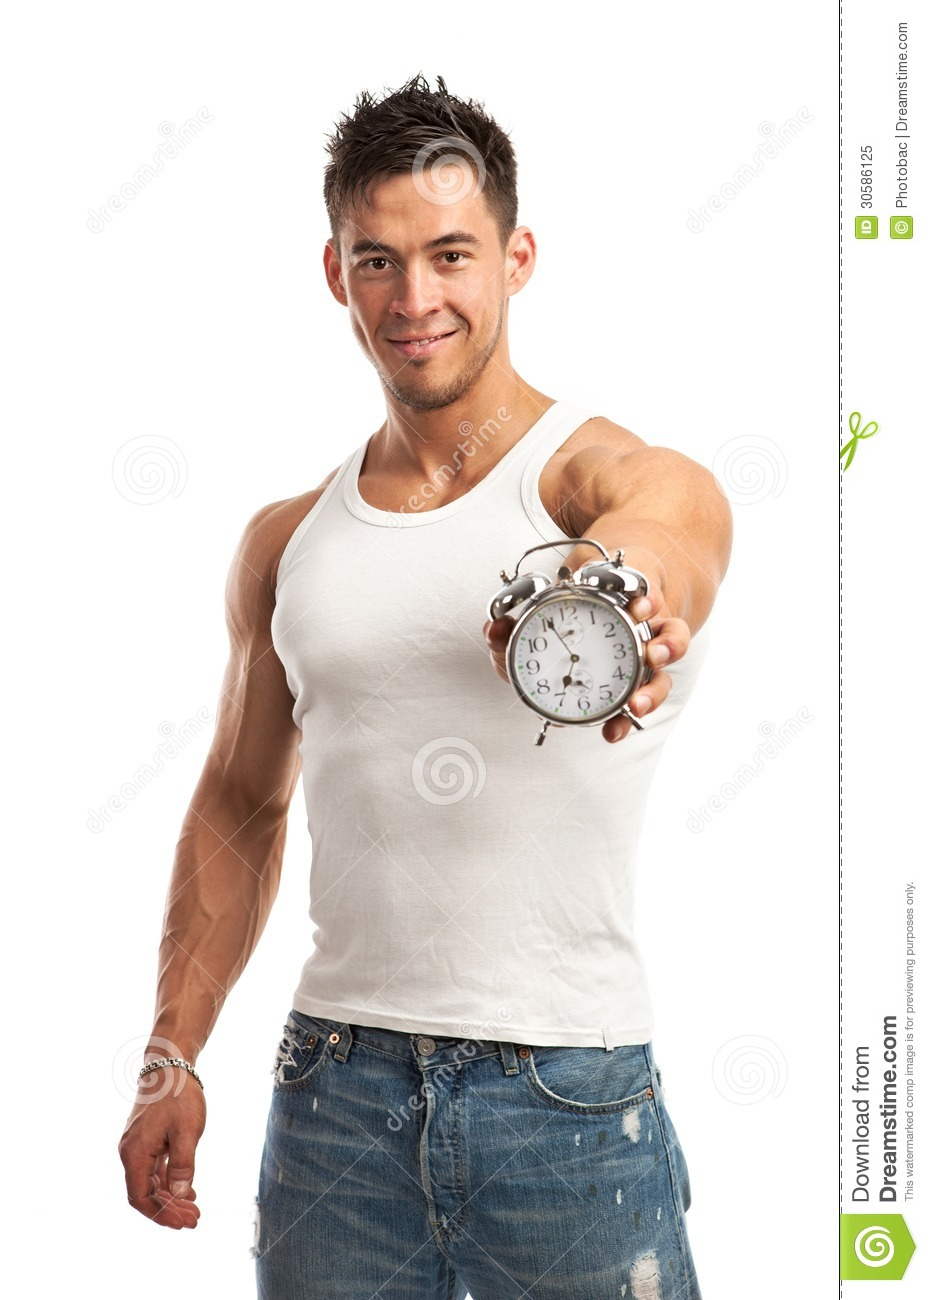 Cropped view of a muscular young man holding clock